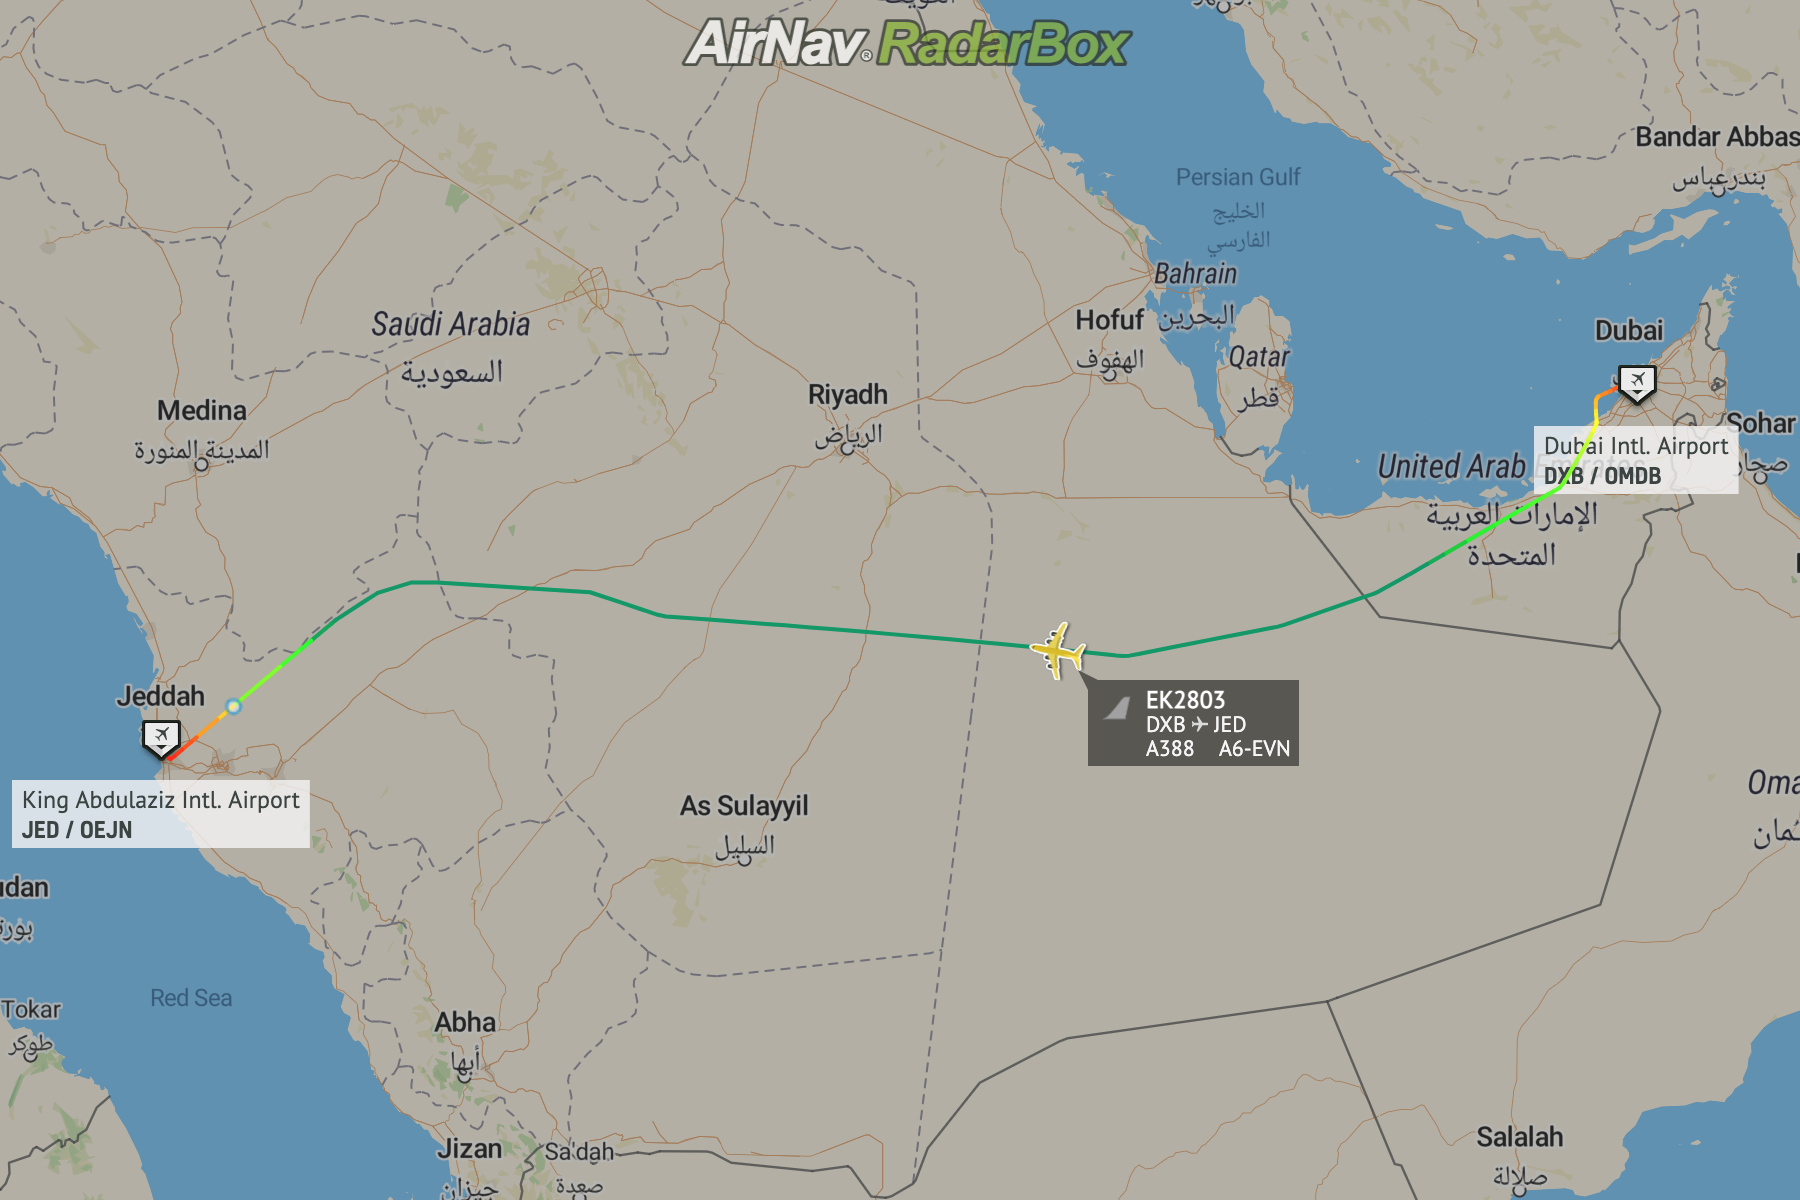 Map showing flight from Dubai to Jeddah